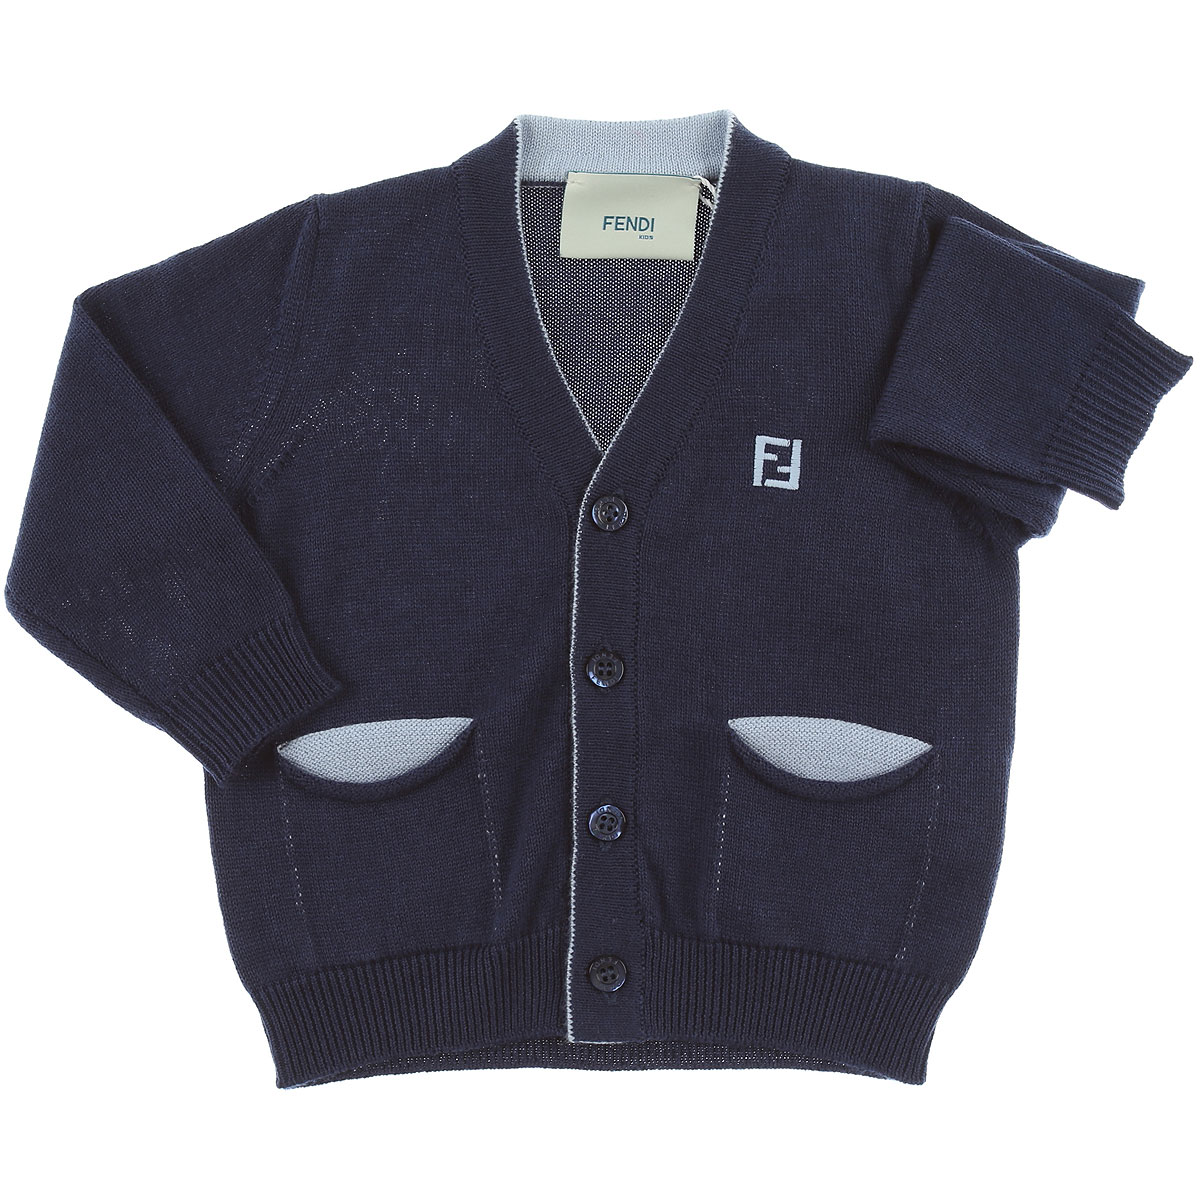 Image of Fendi Baby Sweaters for Boys, Blue, Cotton, 2017, 12M 18M 2Y 3M 6M